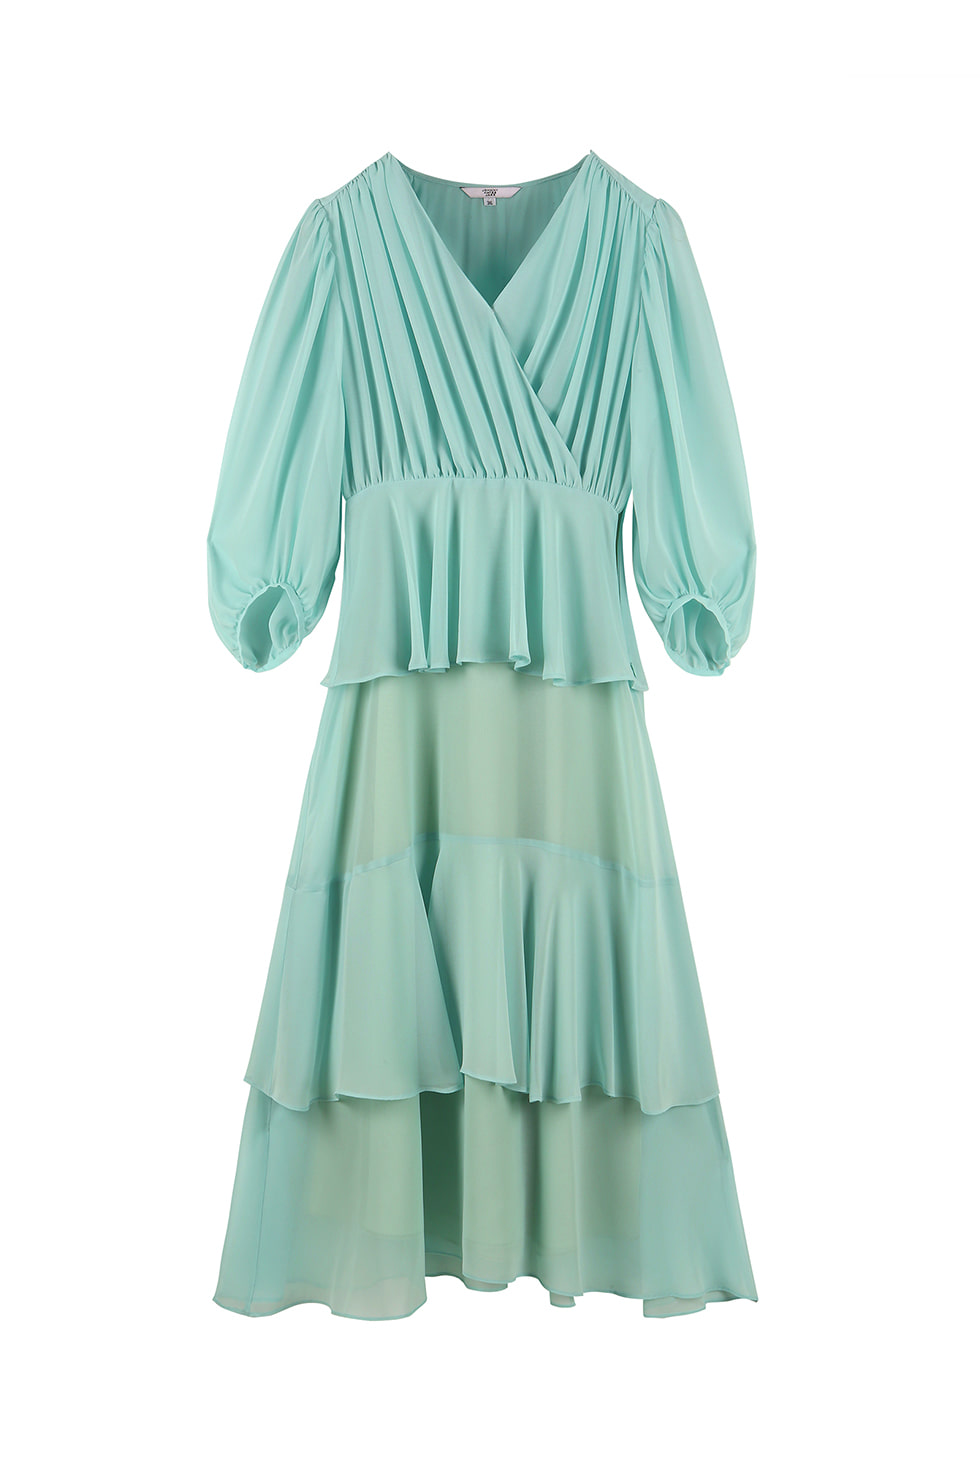 SHIRRING FULL DRESS - MINT